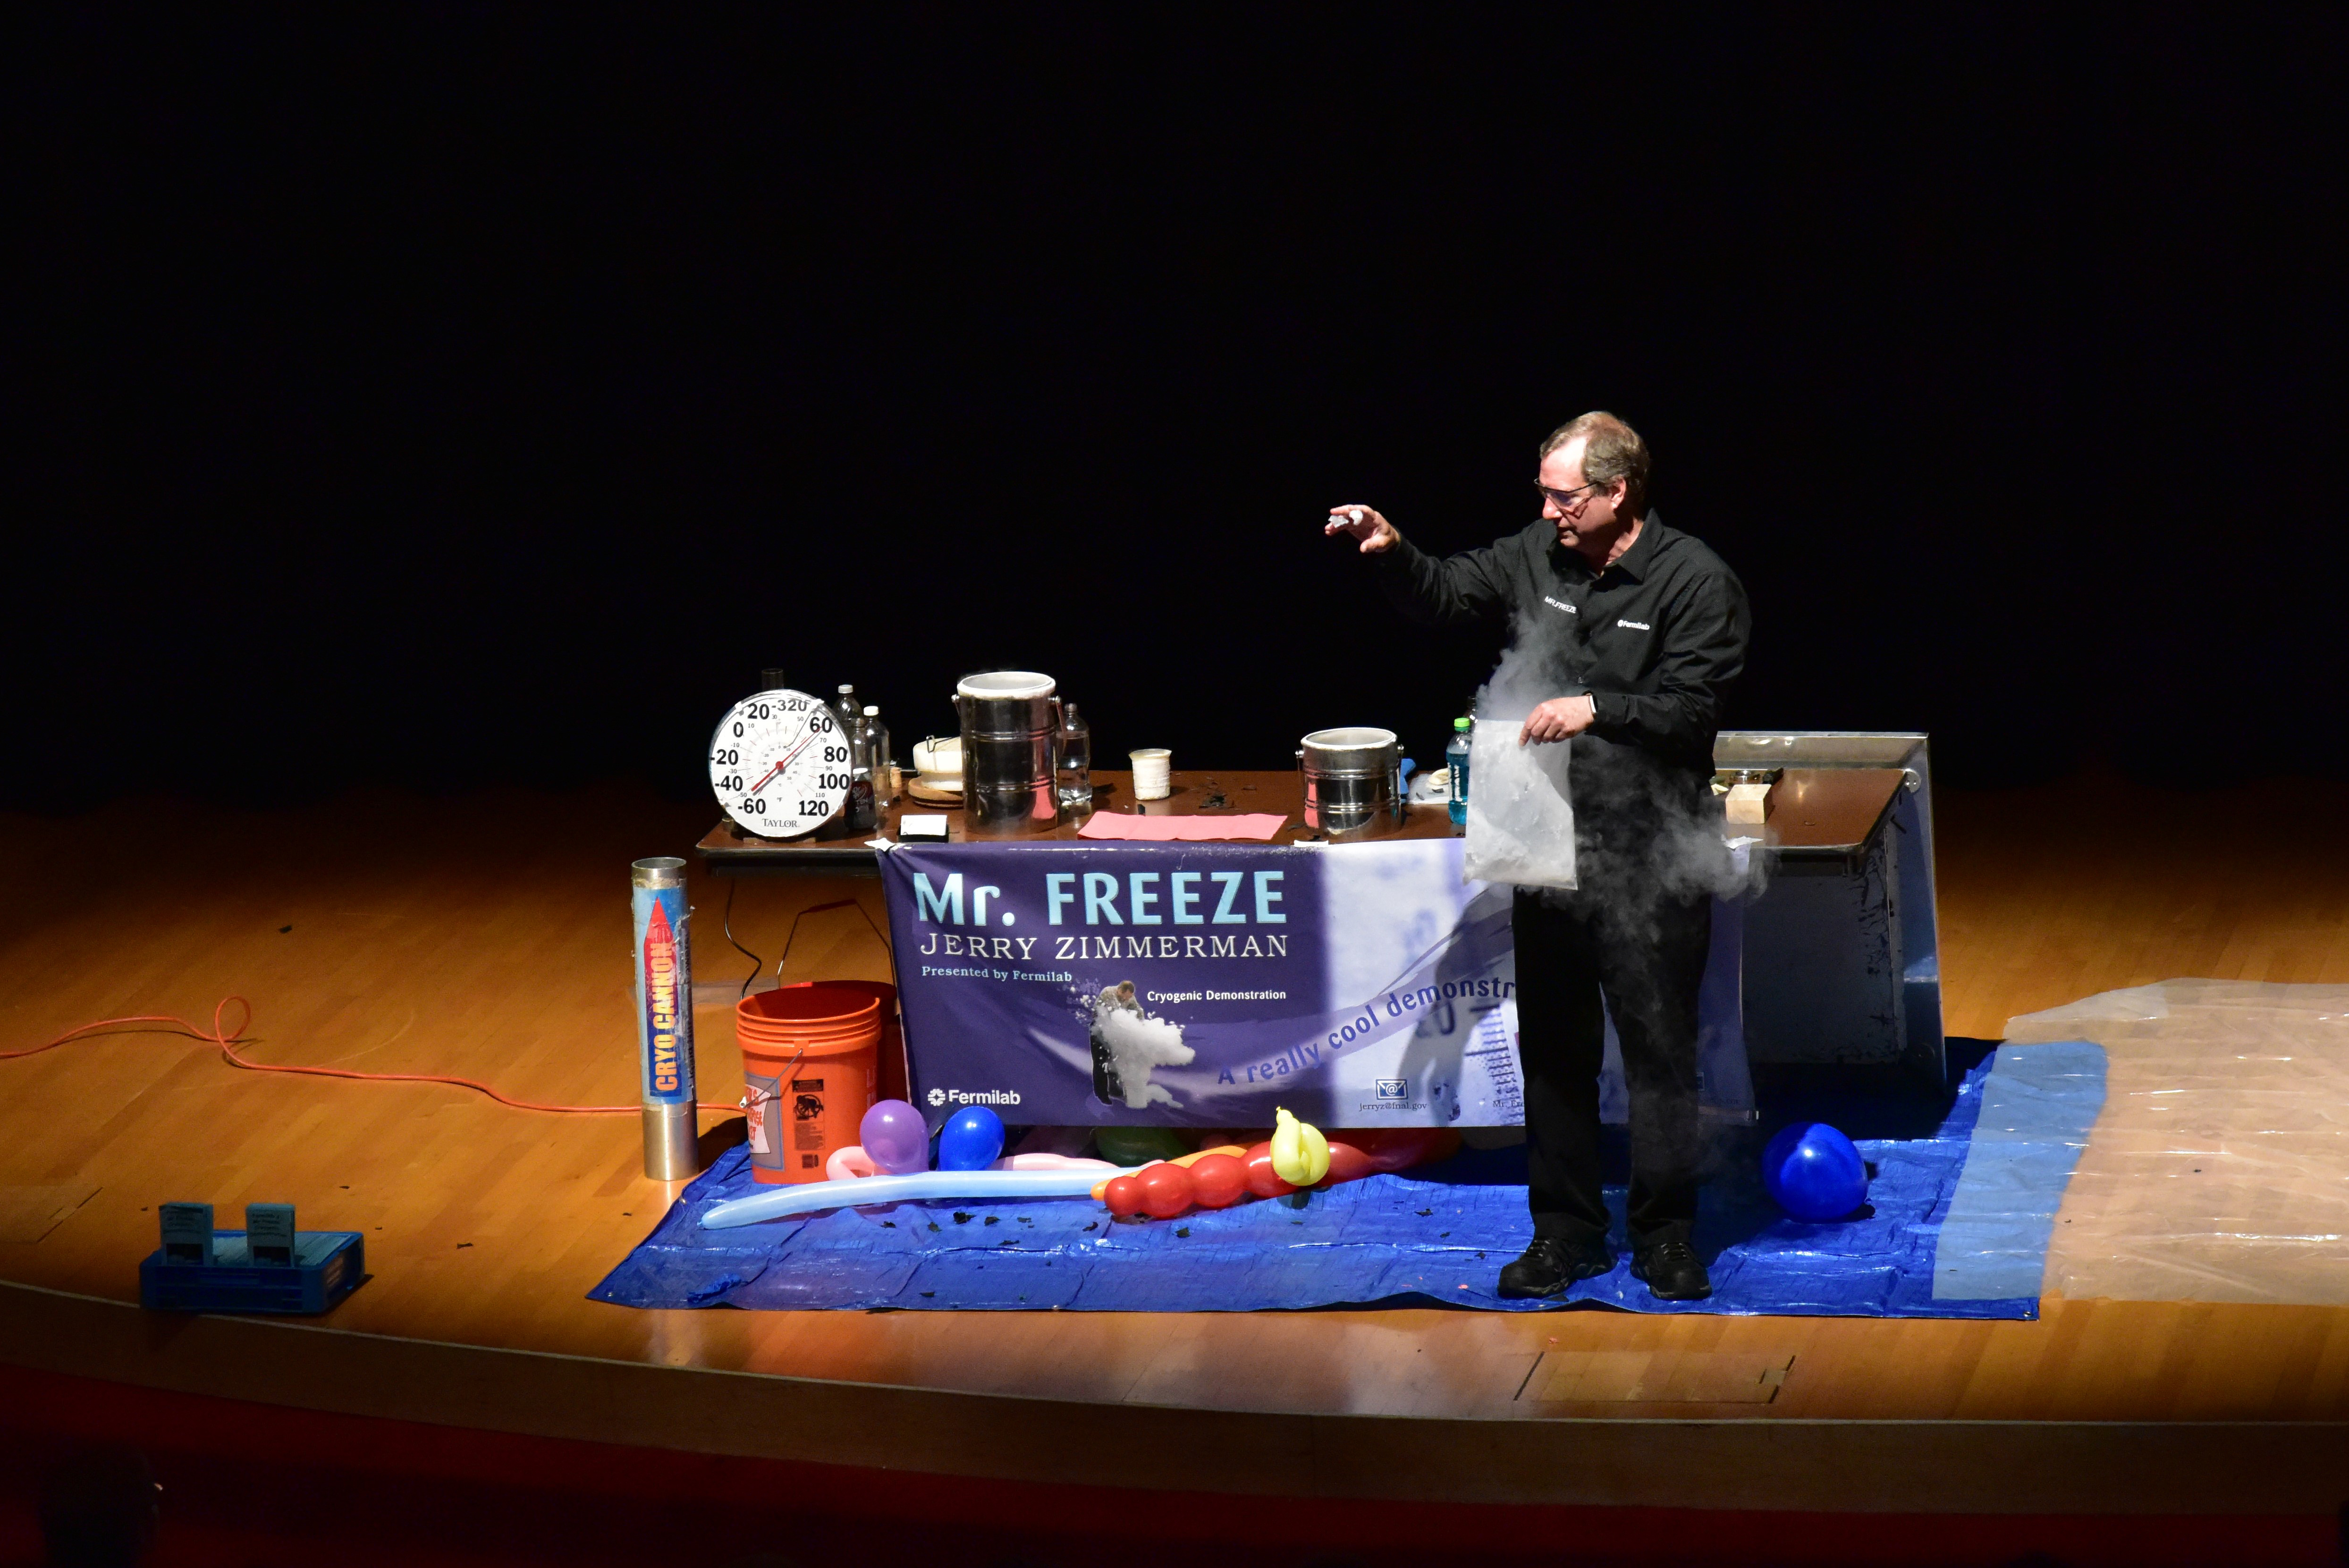 (1/2) Oh, oh, frozen fingers! Jerry Zimmerman performs a wonderful cryogenics demonstration as Mr. Freeze at DASTOW 2017. people Photo: Leticia Shaddix